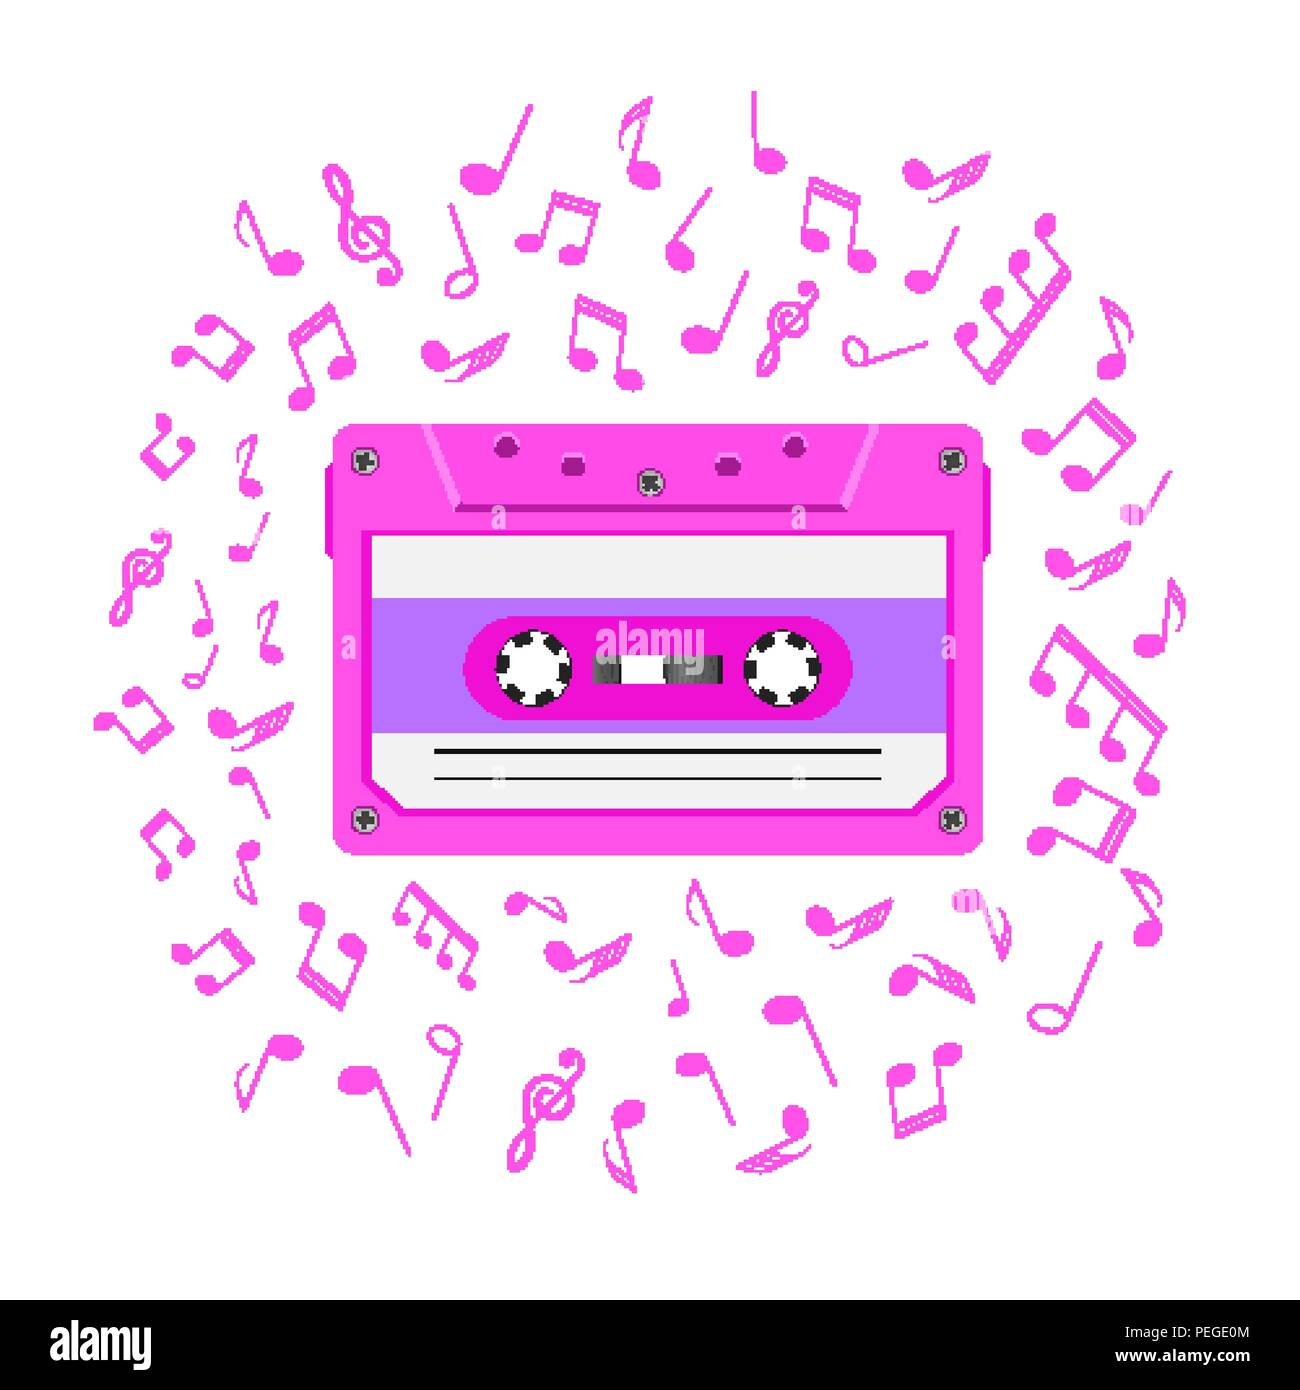 1080s retro music background with magnetic audio tape and notes - Stock Image